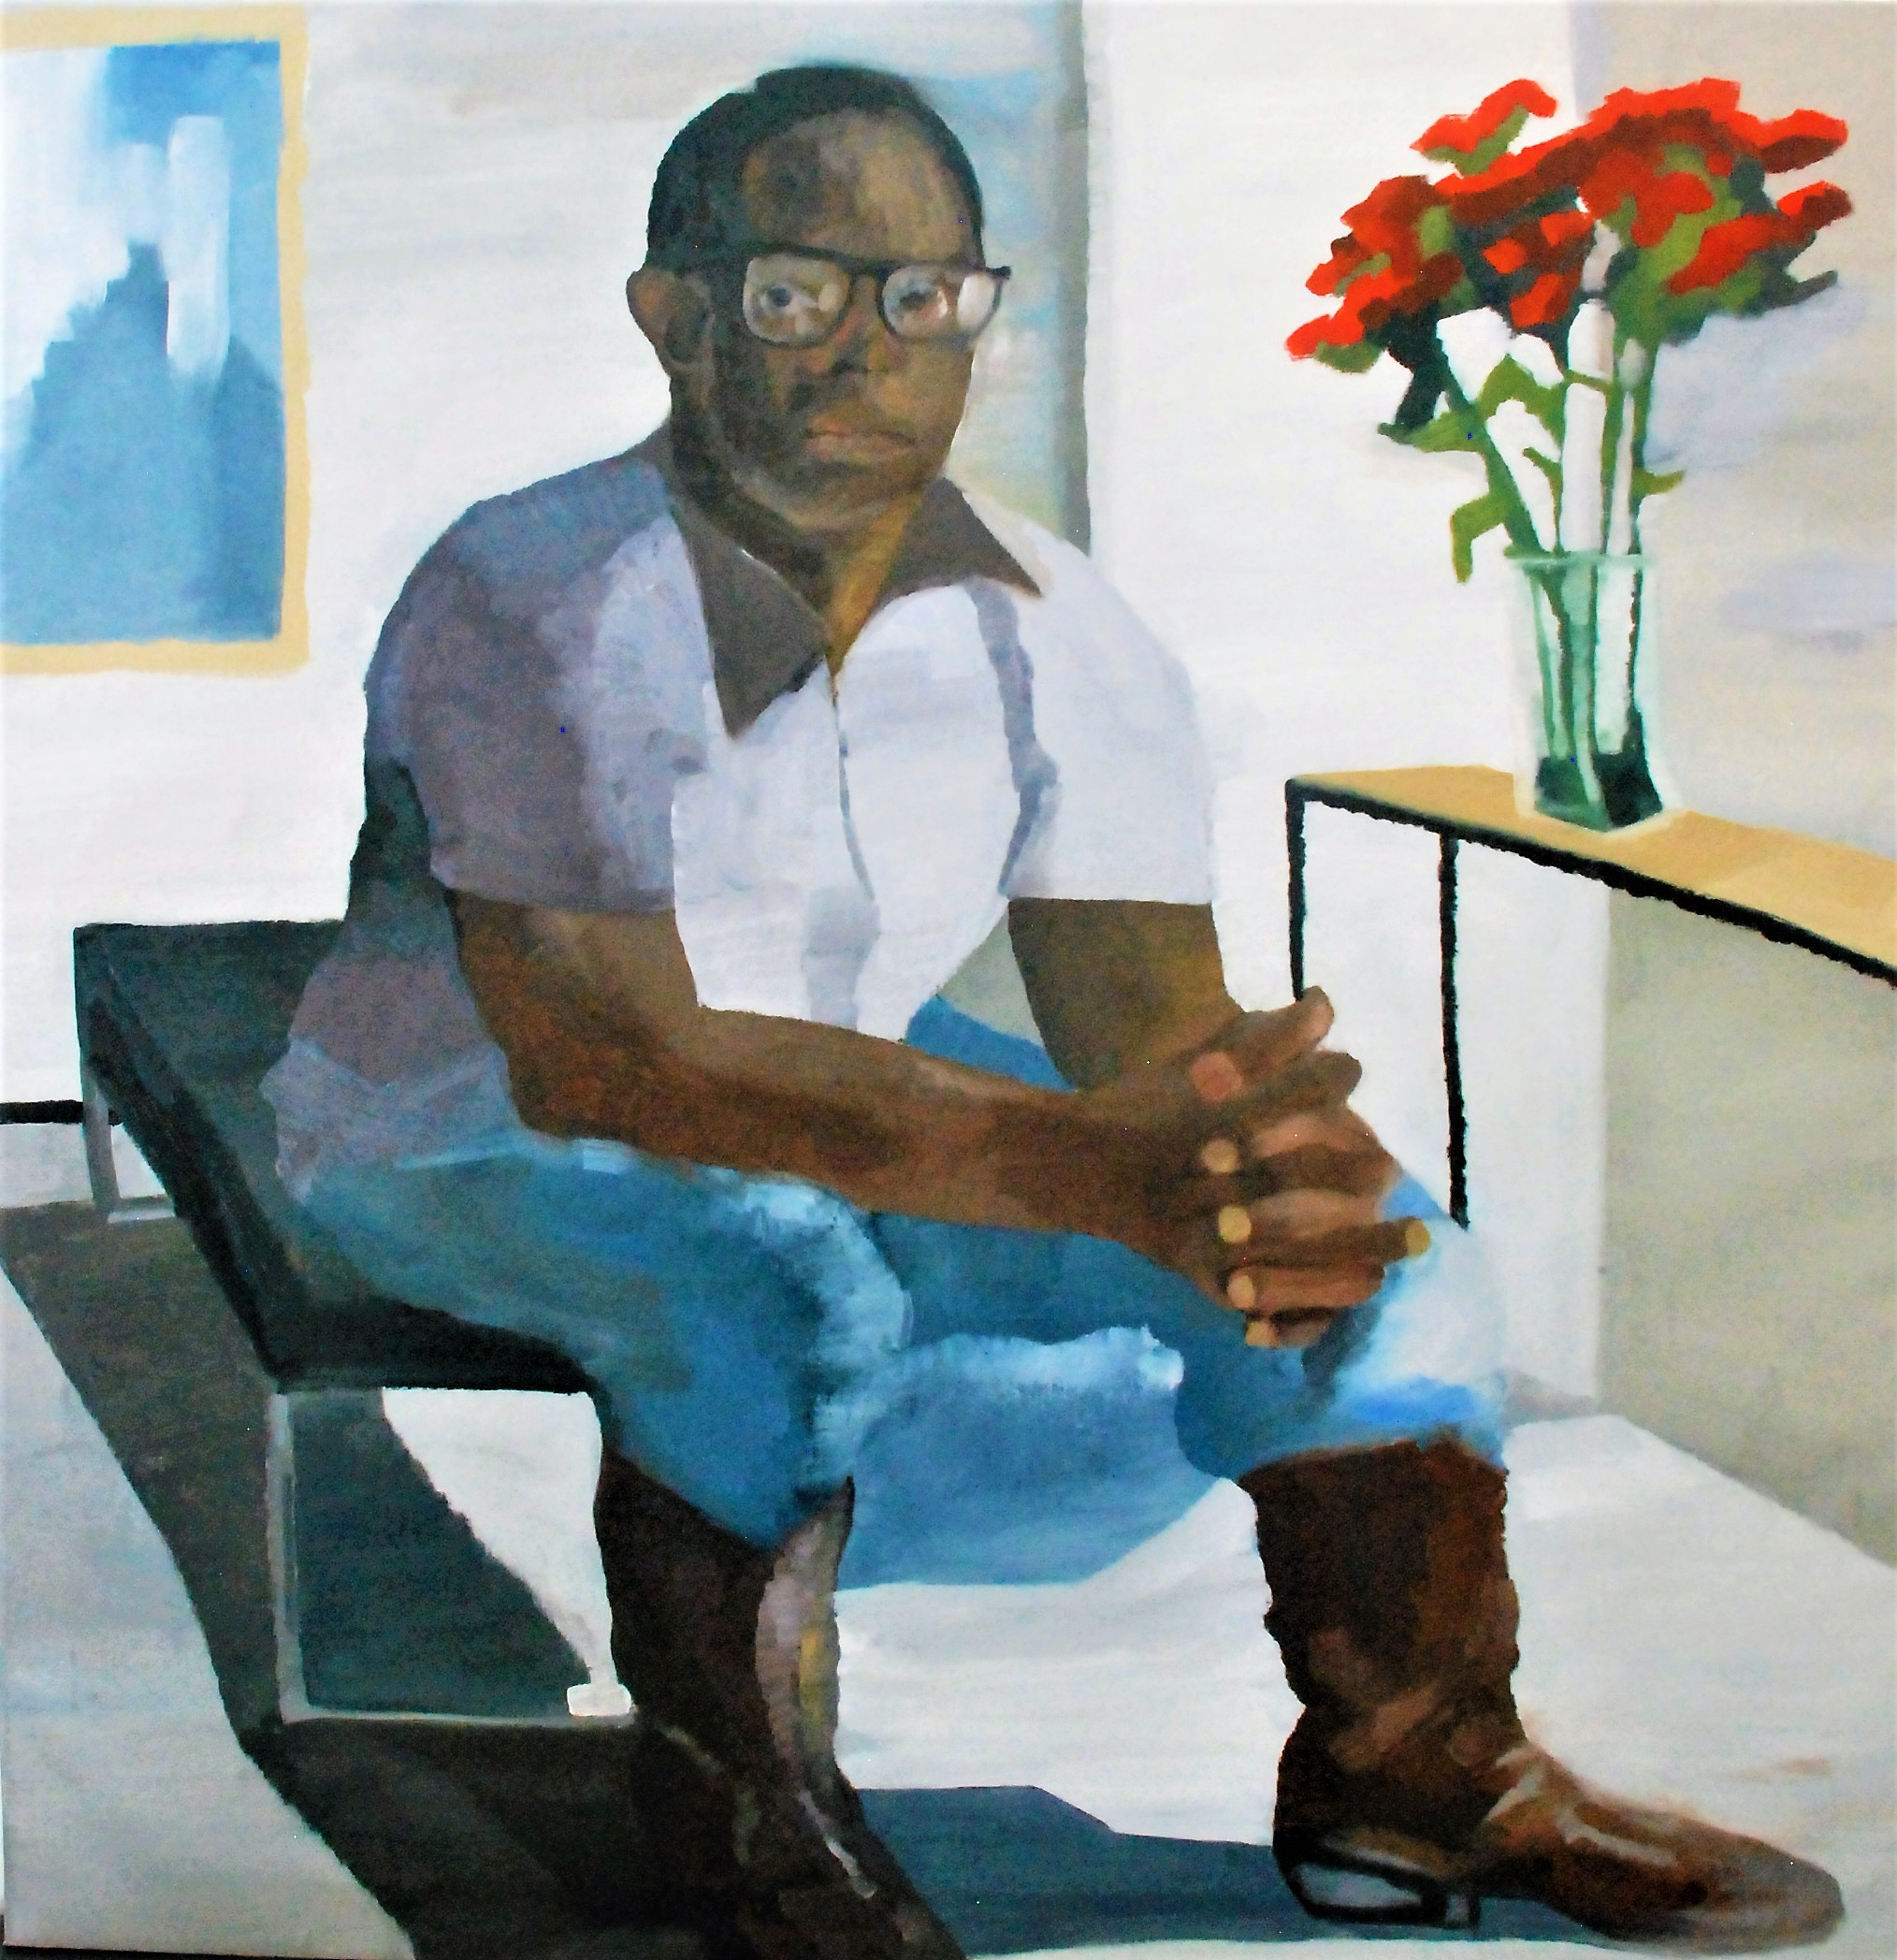 RochelleJohnson-SouthernGentalman-36x35inches-oil.JPG